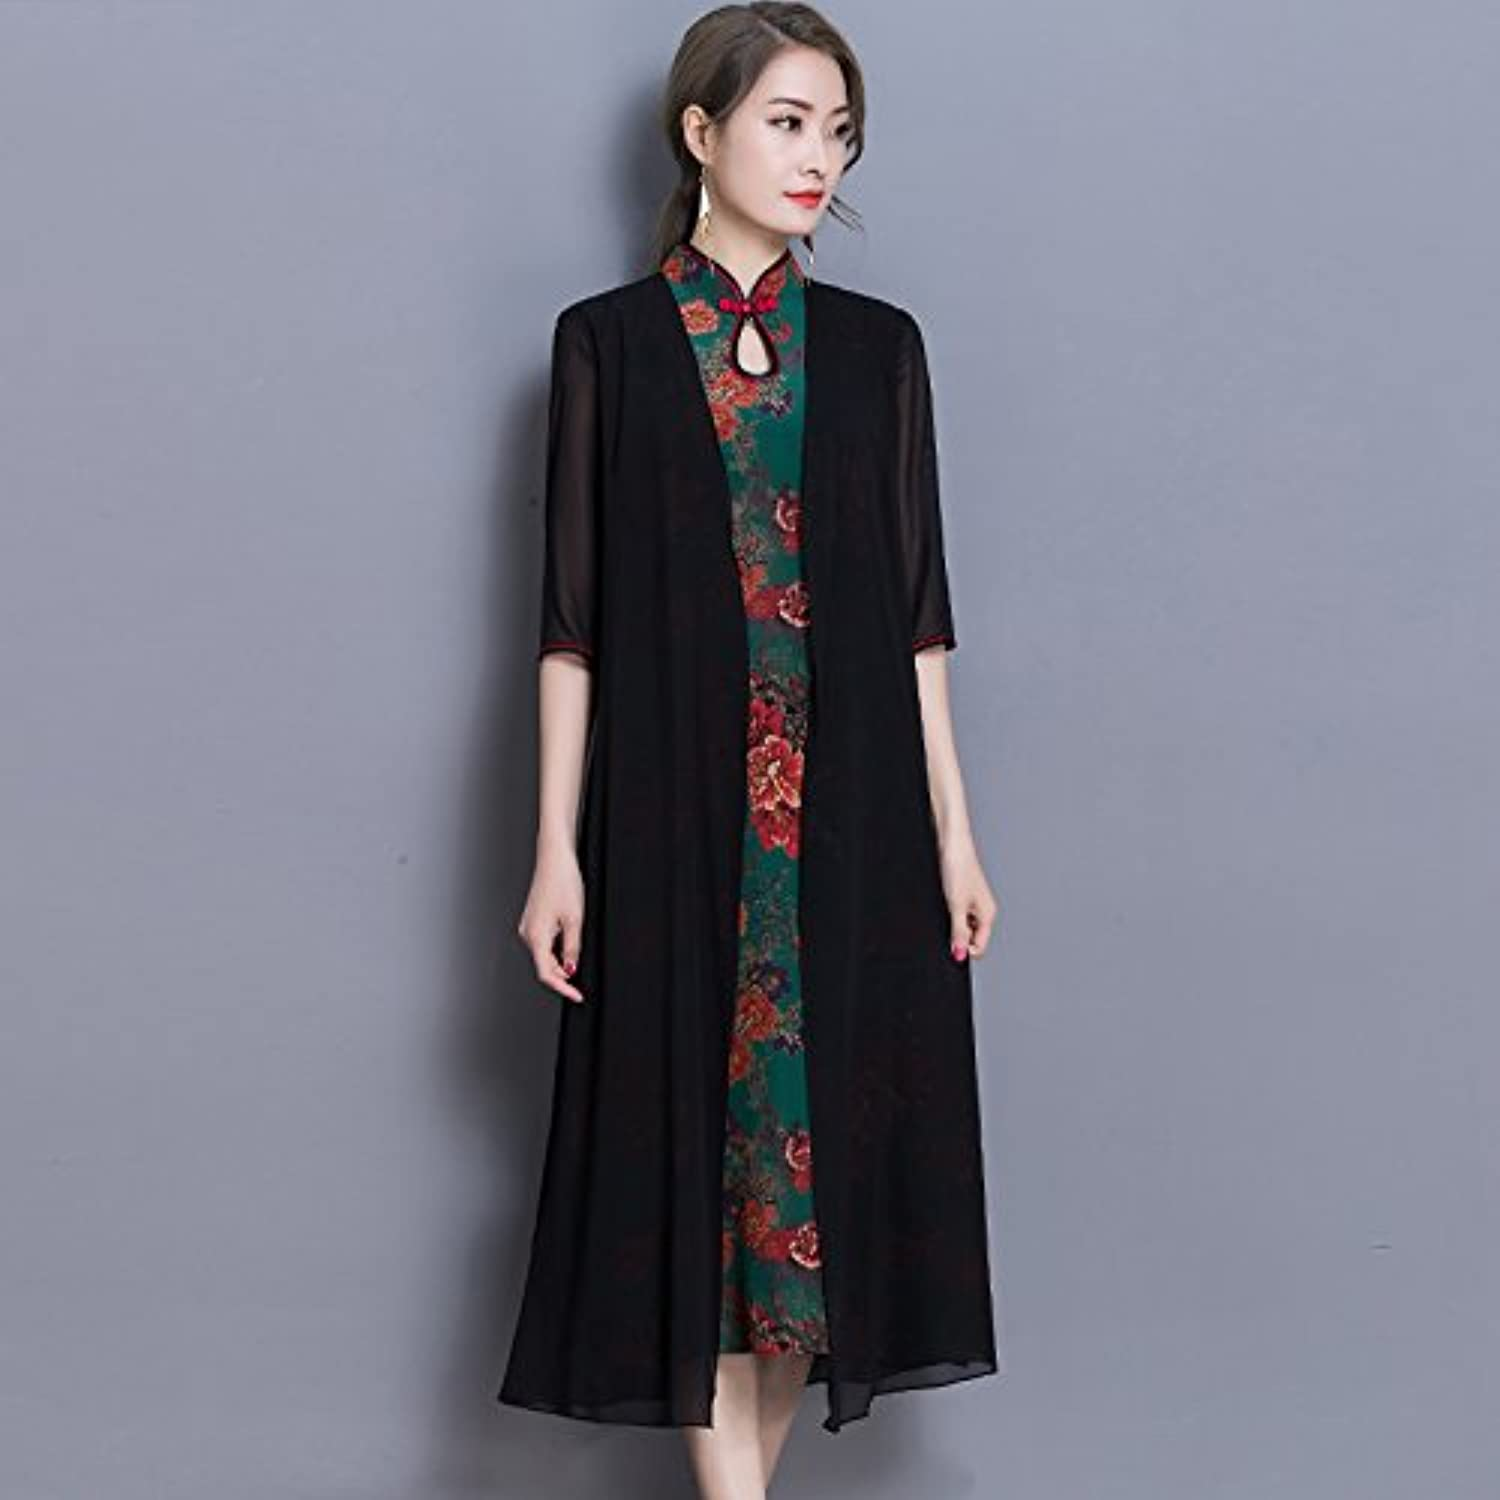 XIURONG Spring and Summer Lady's Loose Dress Dress